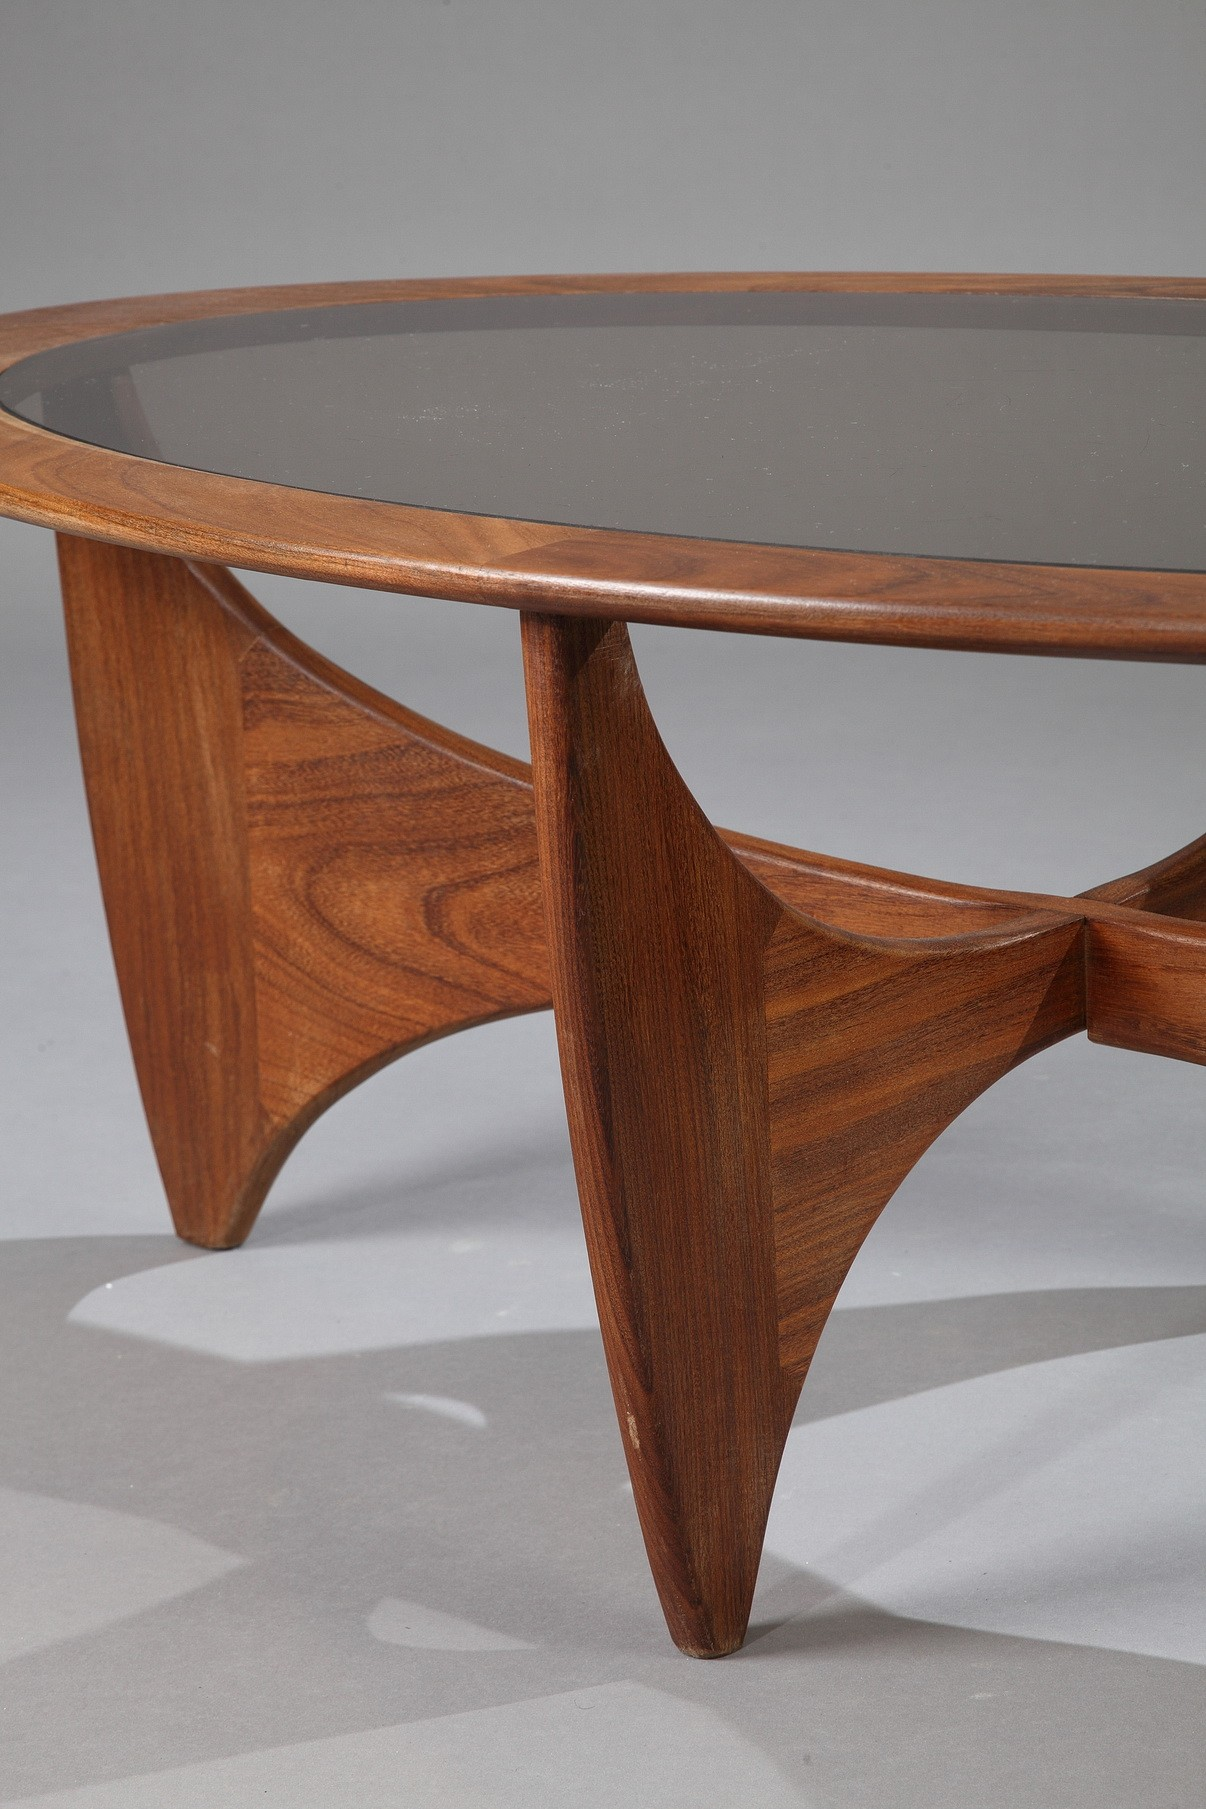 Oval G Plan Astro Coffee Table In Teak And Smoked Glass